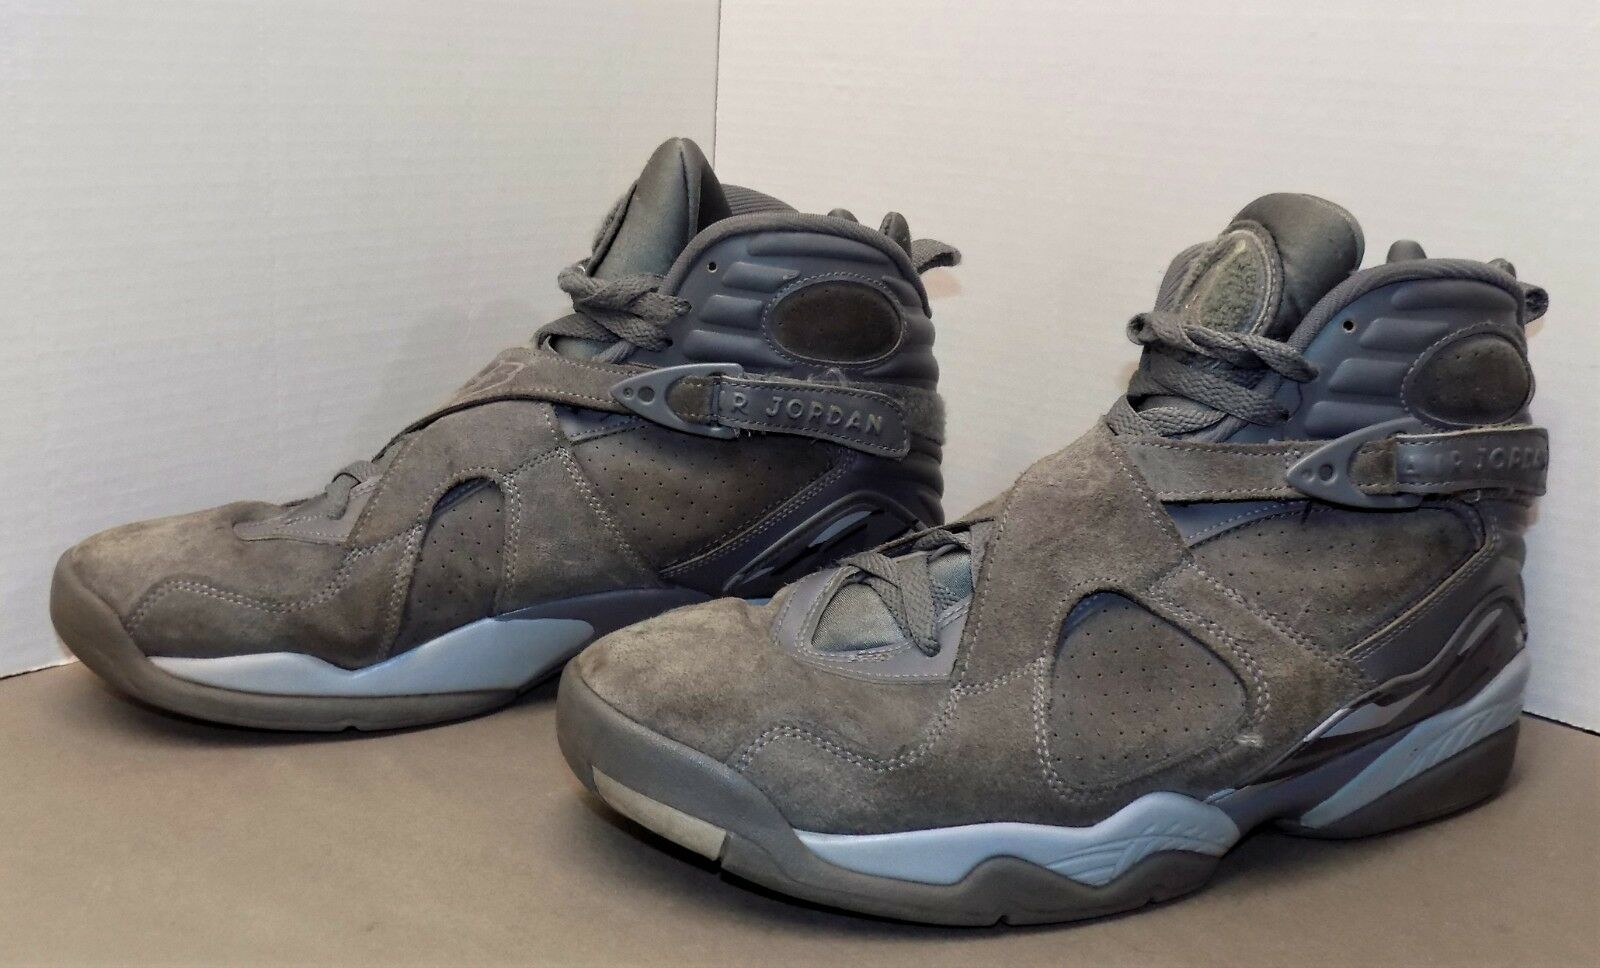 NIKE AIR JORDAN 8 VIII retro high top shoes 819472-001 M 11 grey wolf suede EX